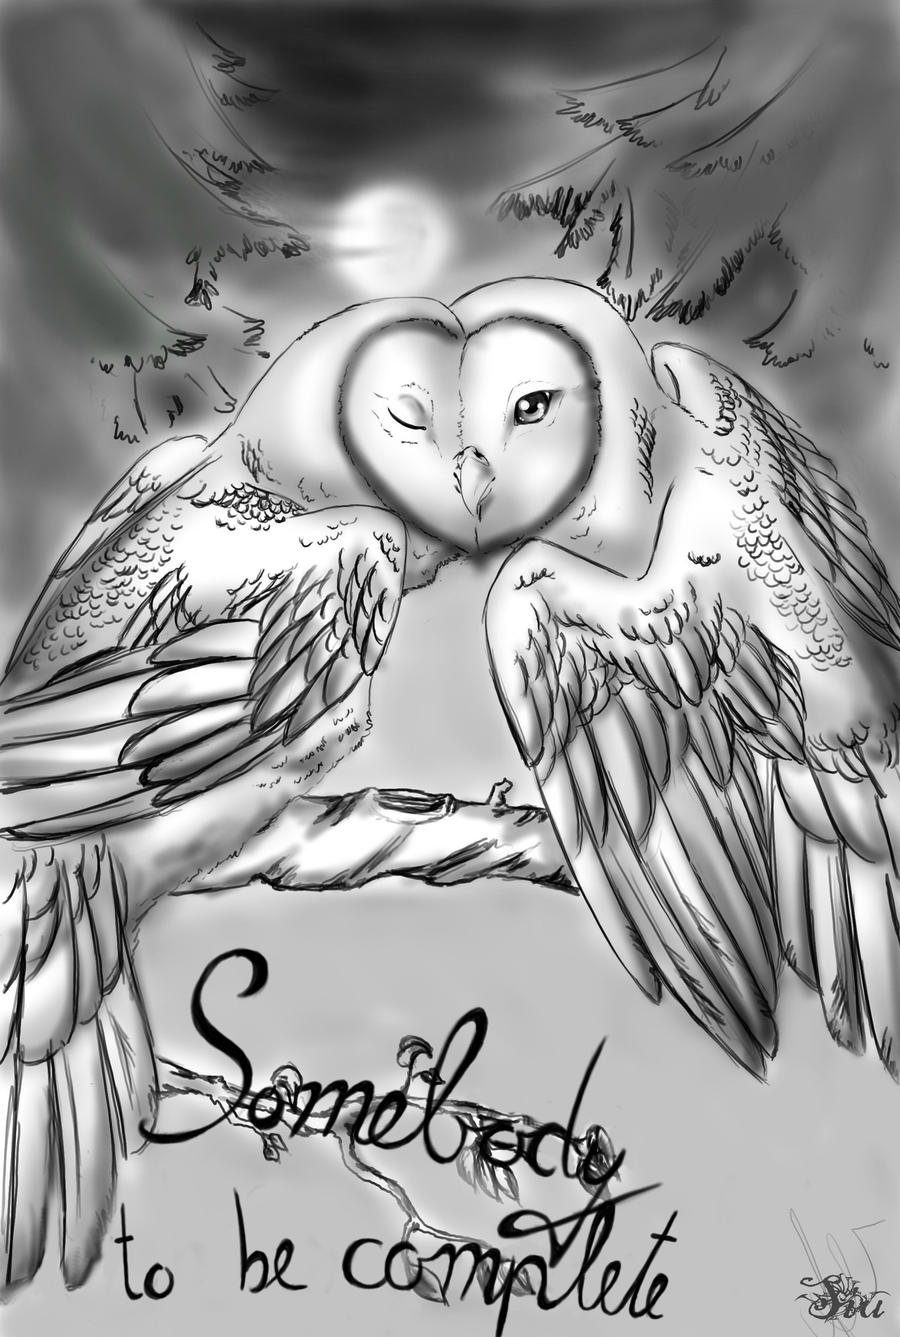 Cute owl love drawing - photo#20